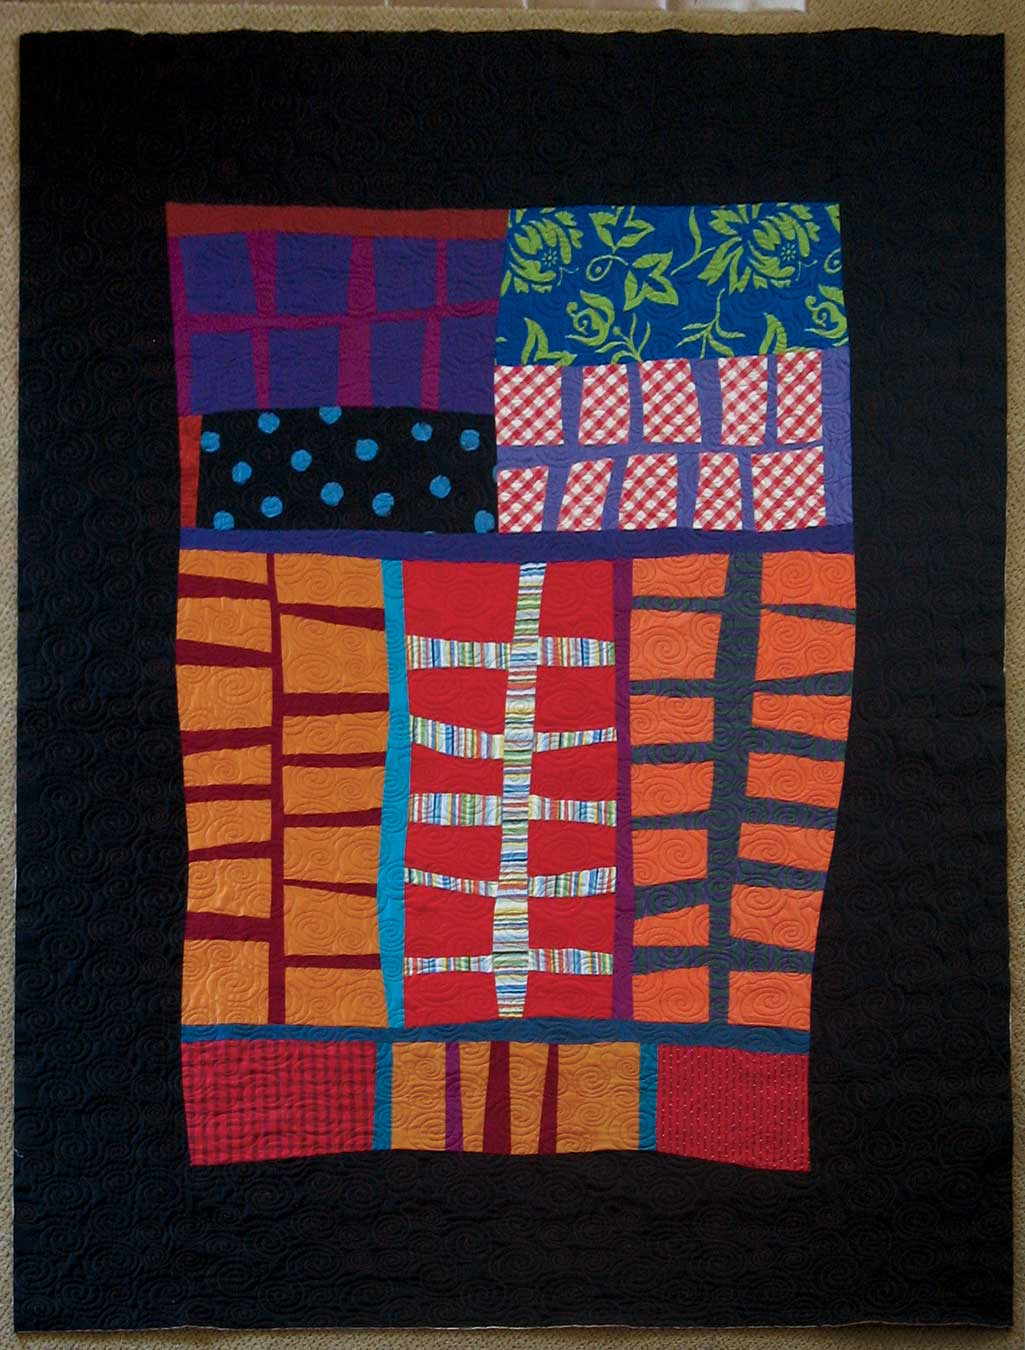 """Spines, 63½"""" x 83˝, 2013, by Pam Rocco. An original design made during Mike McNamara's improvisational quilting class at SueDee's Fabrics, Knitting and More in Scotts Valley, California."""